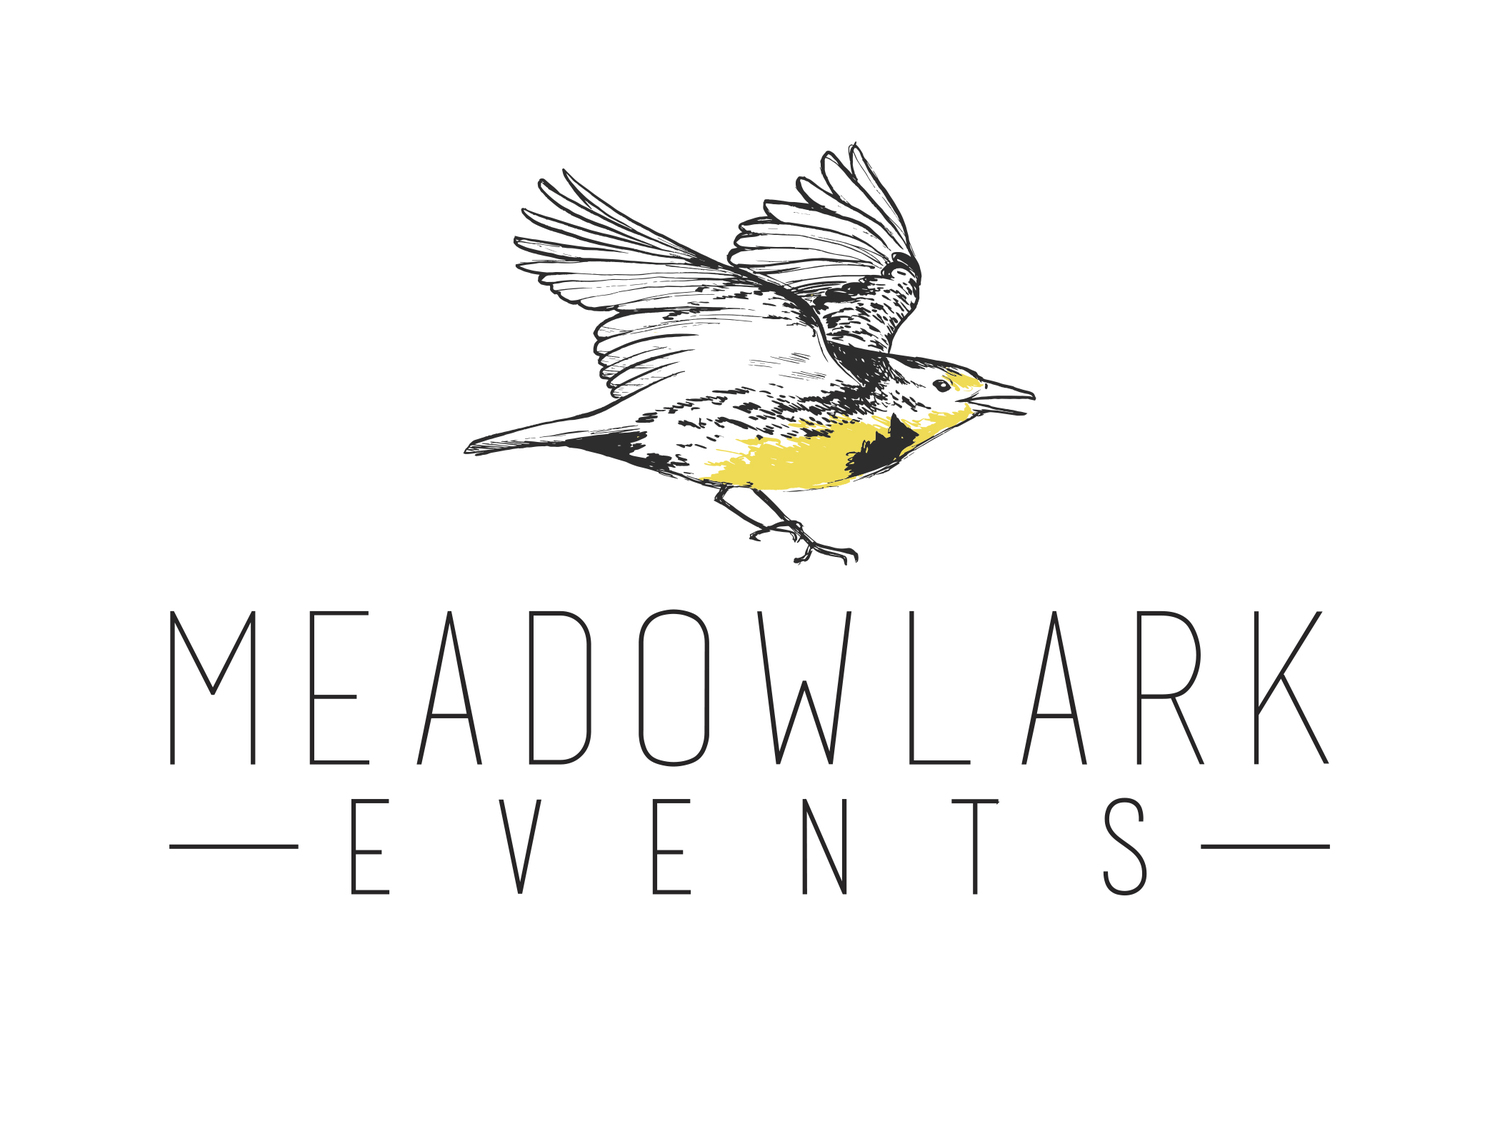 Meadowlark Events